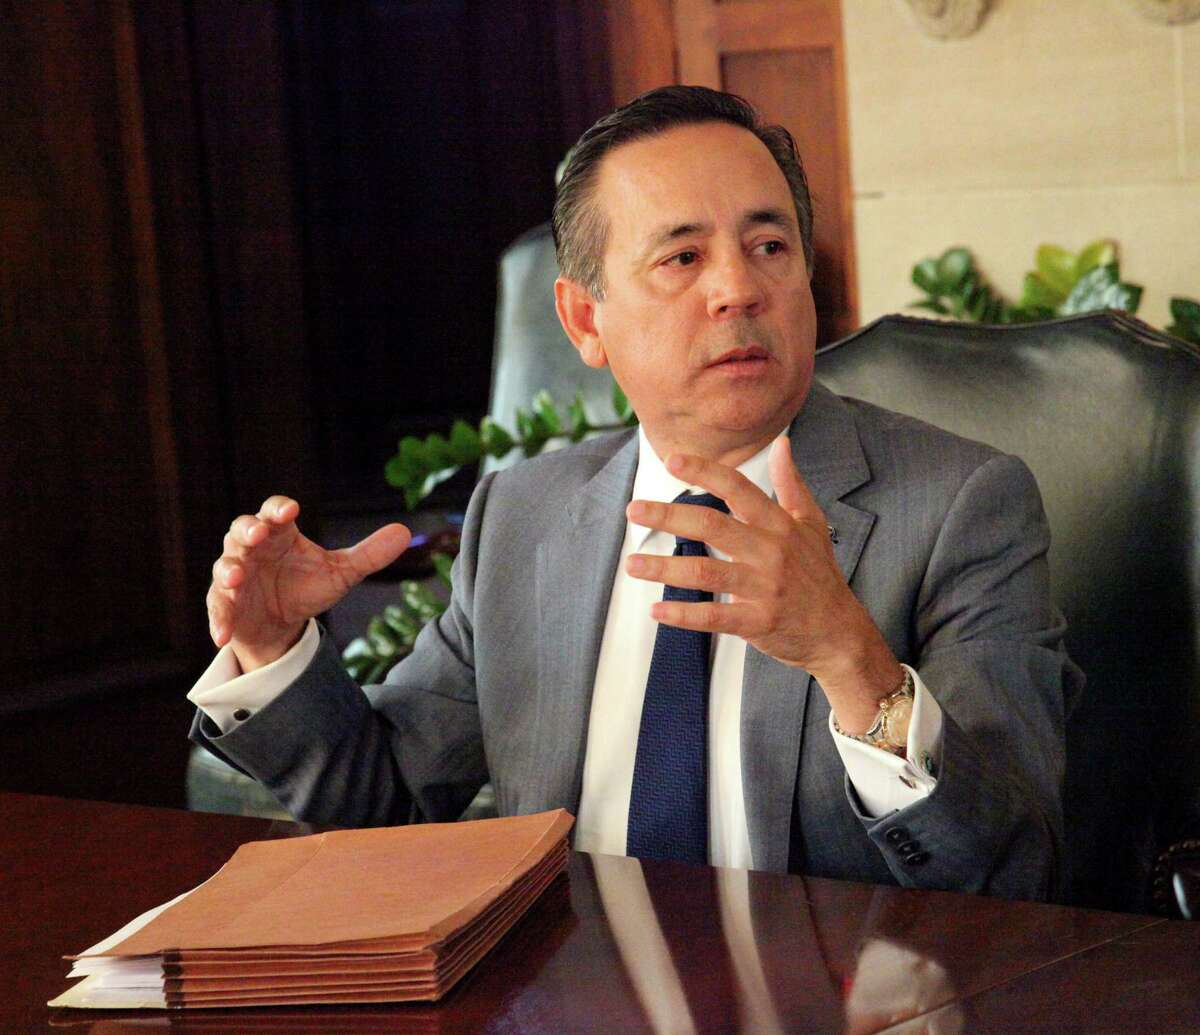 Sen. Carlos Uresti is seeking renomination to the Texas Senate District 19 post. He is far more qualified than his Democratic opponent and deserves support from Democratic voters.